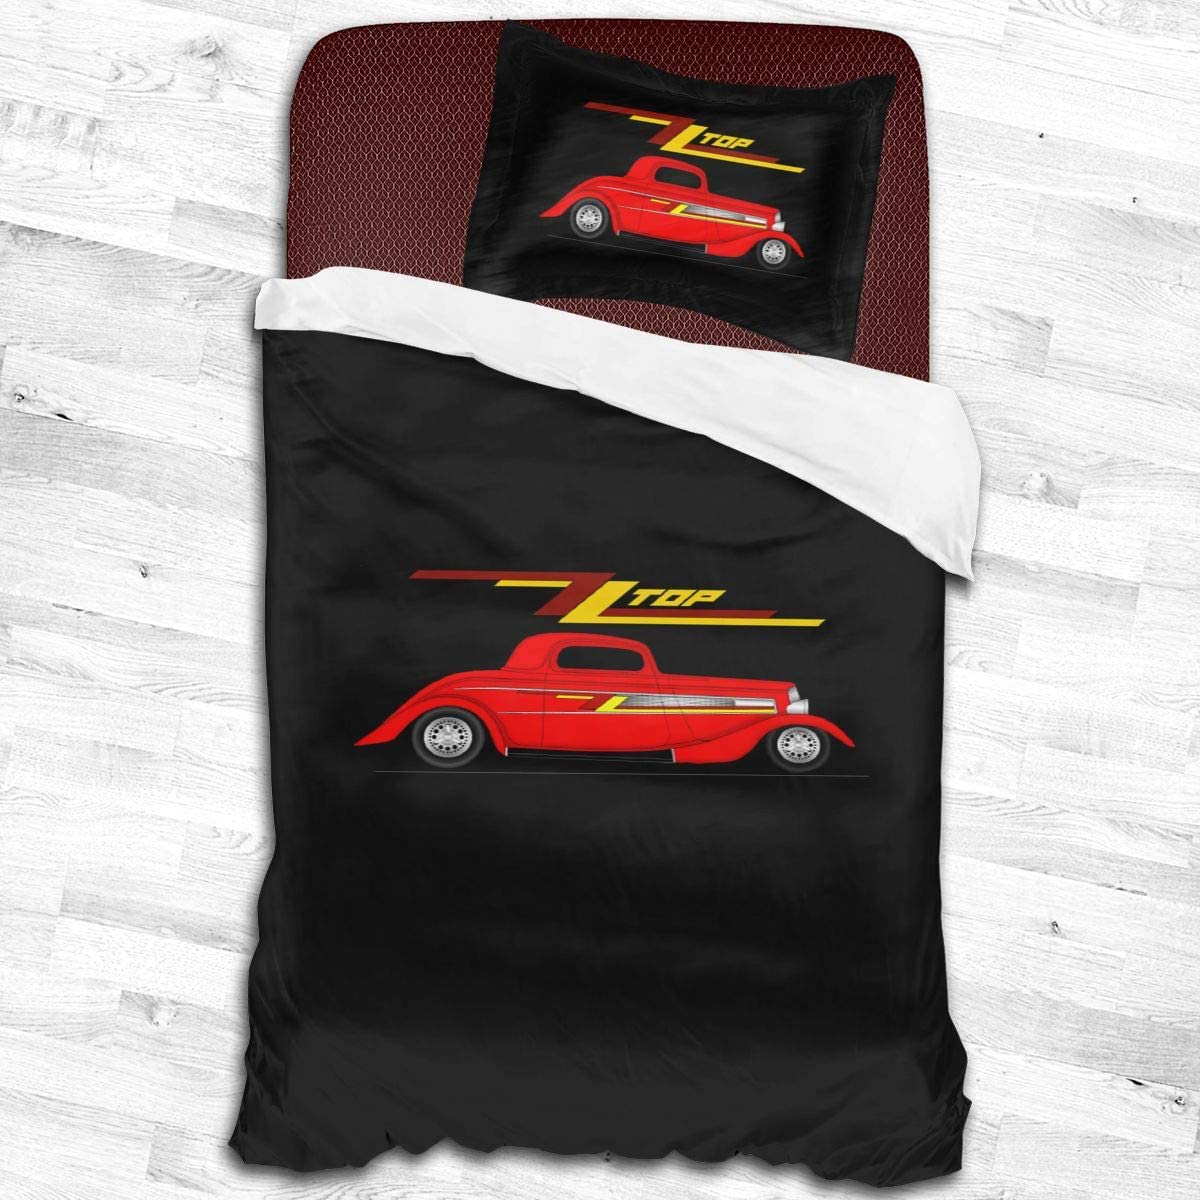 Qwtywqekeertyi Zz Top Cotton Student Dormitory Quilt Cover Two-Piece Quilt Cover for Boys and Girls On Single Beds